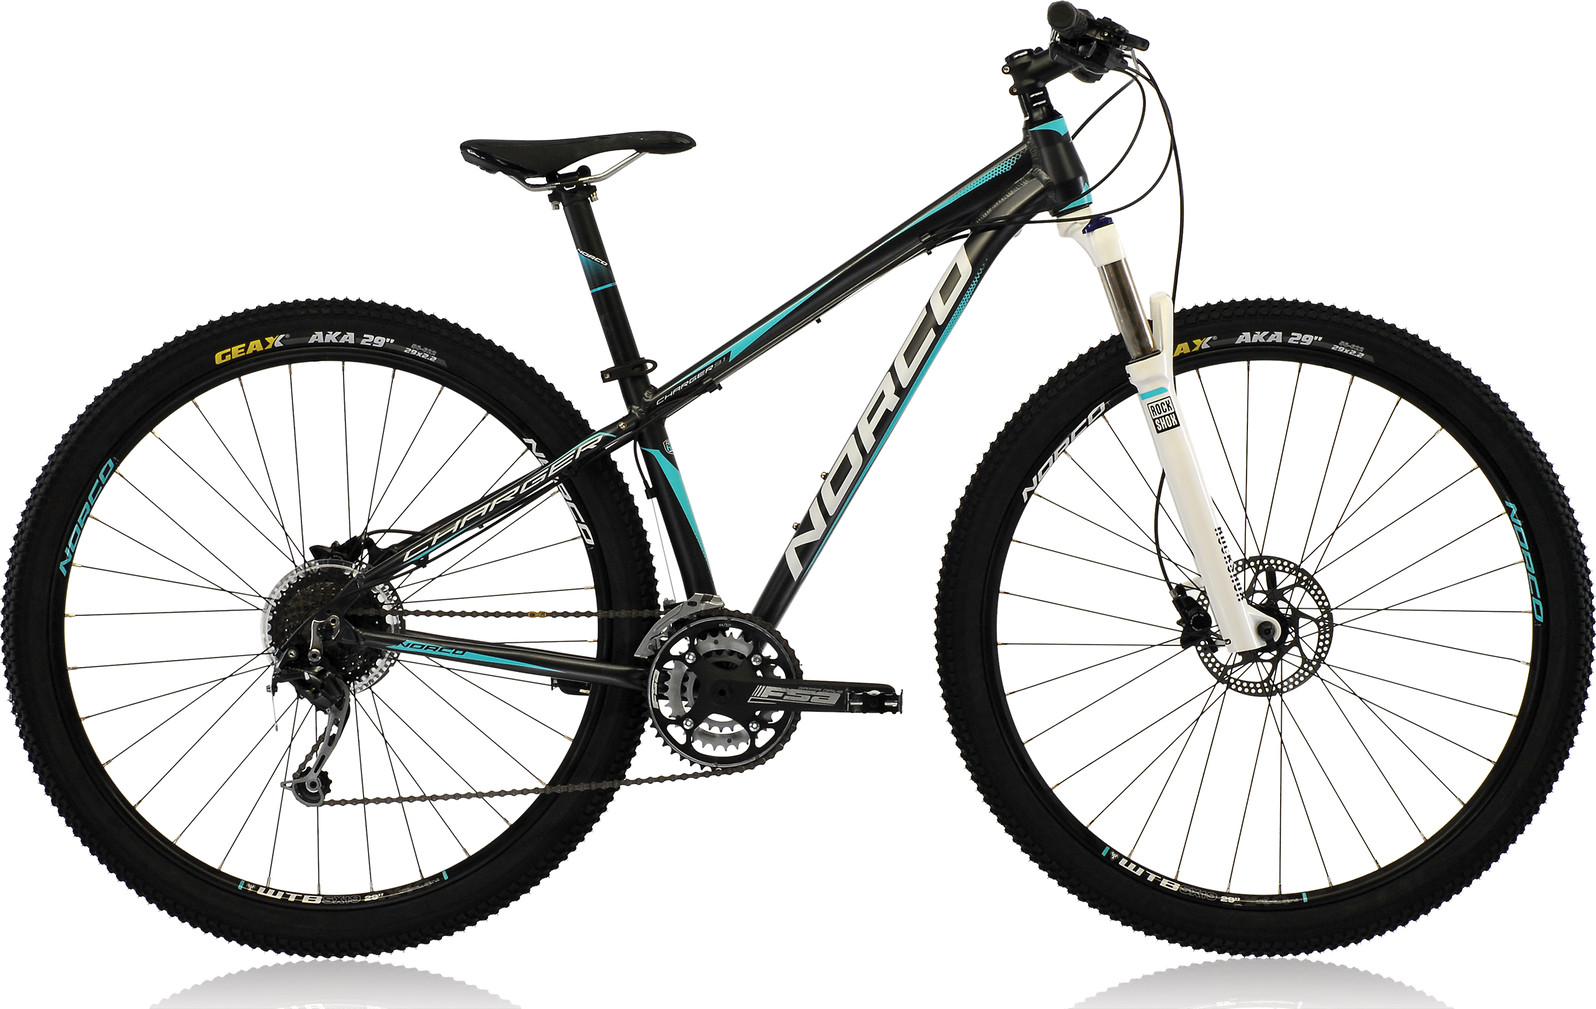 2013 Norco Charger 9 1 Forma Bike Reviews Comparisons